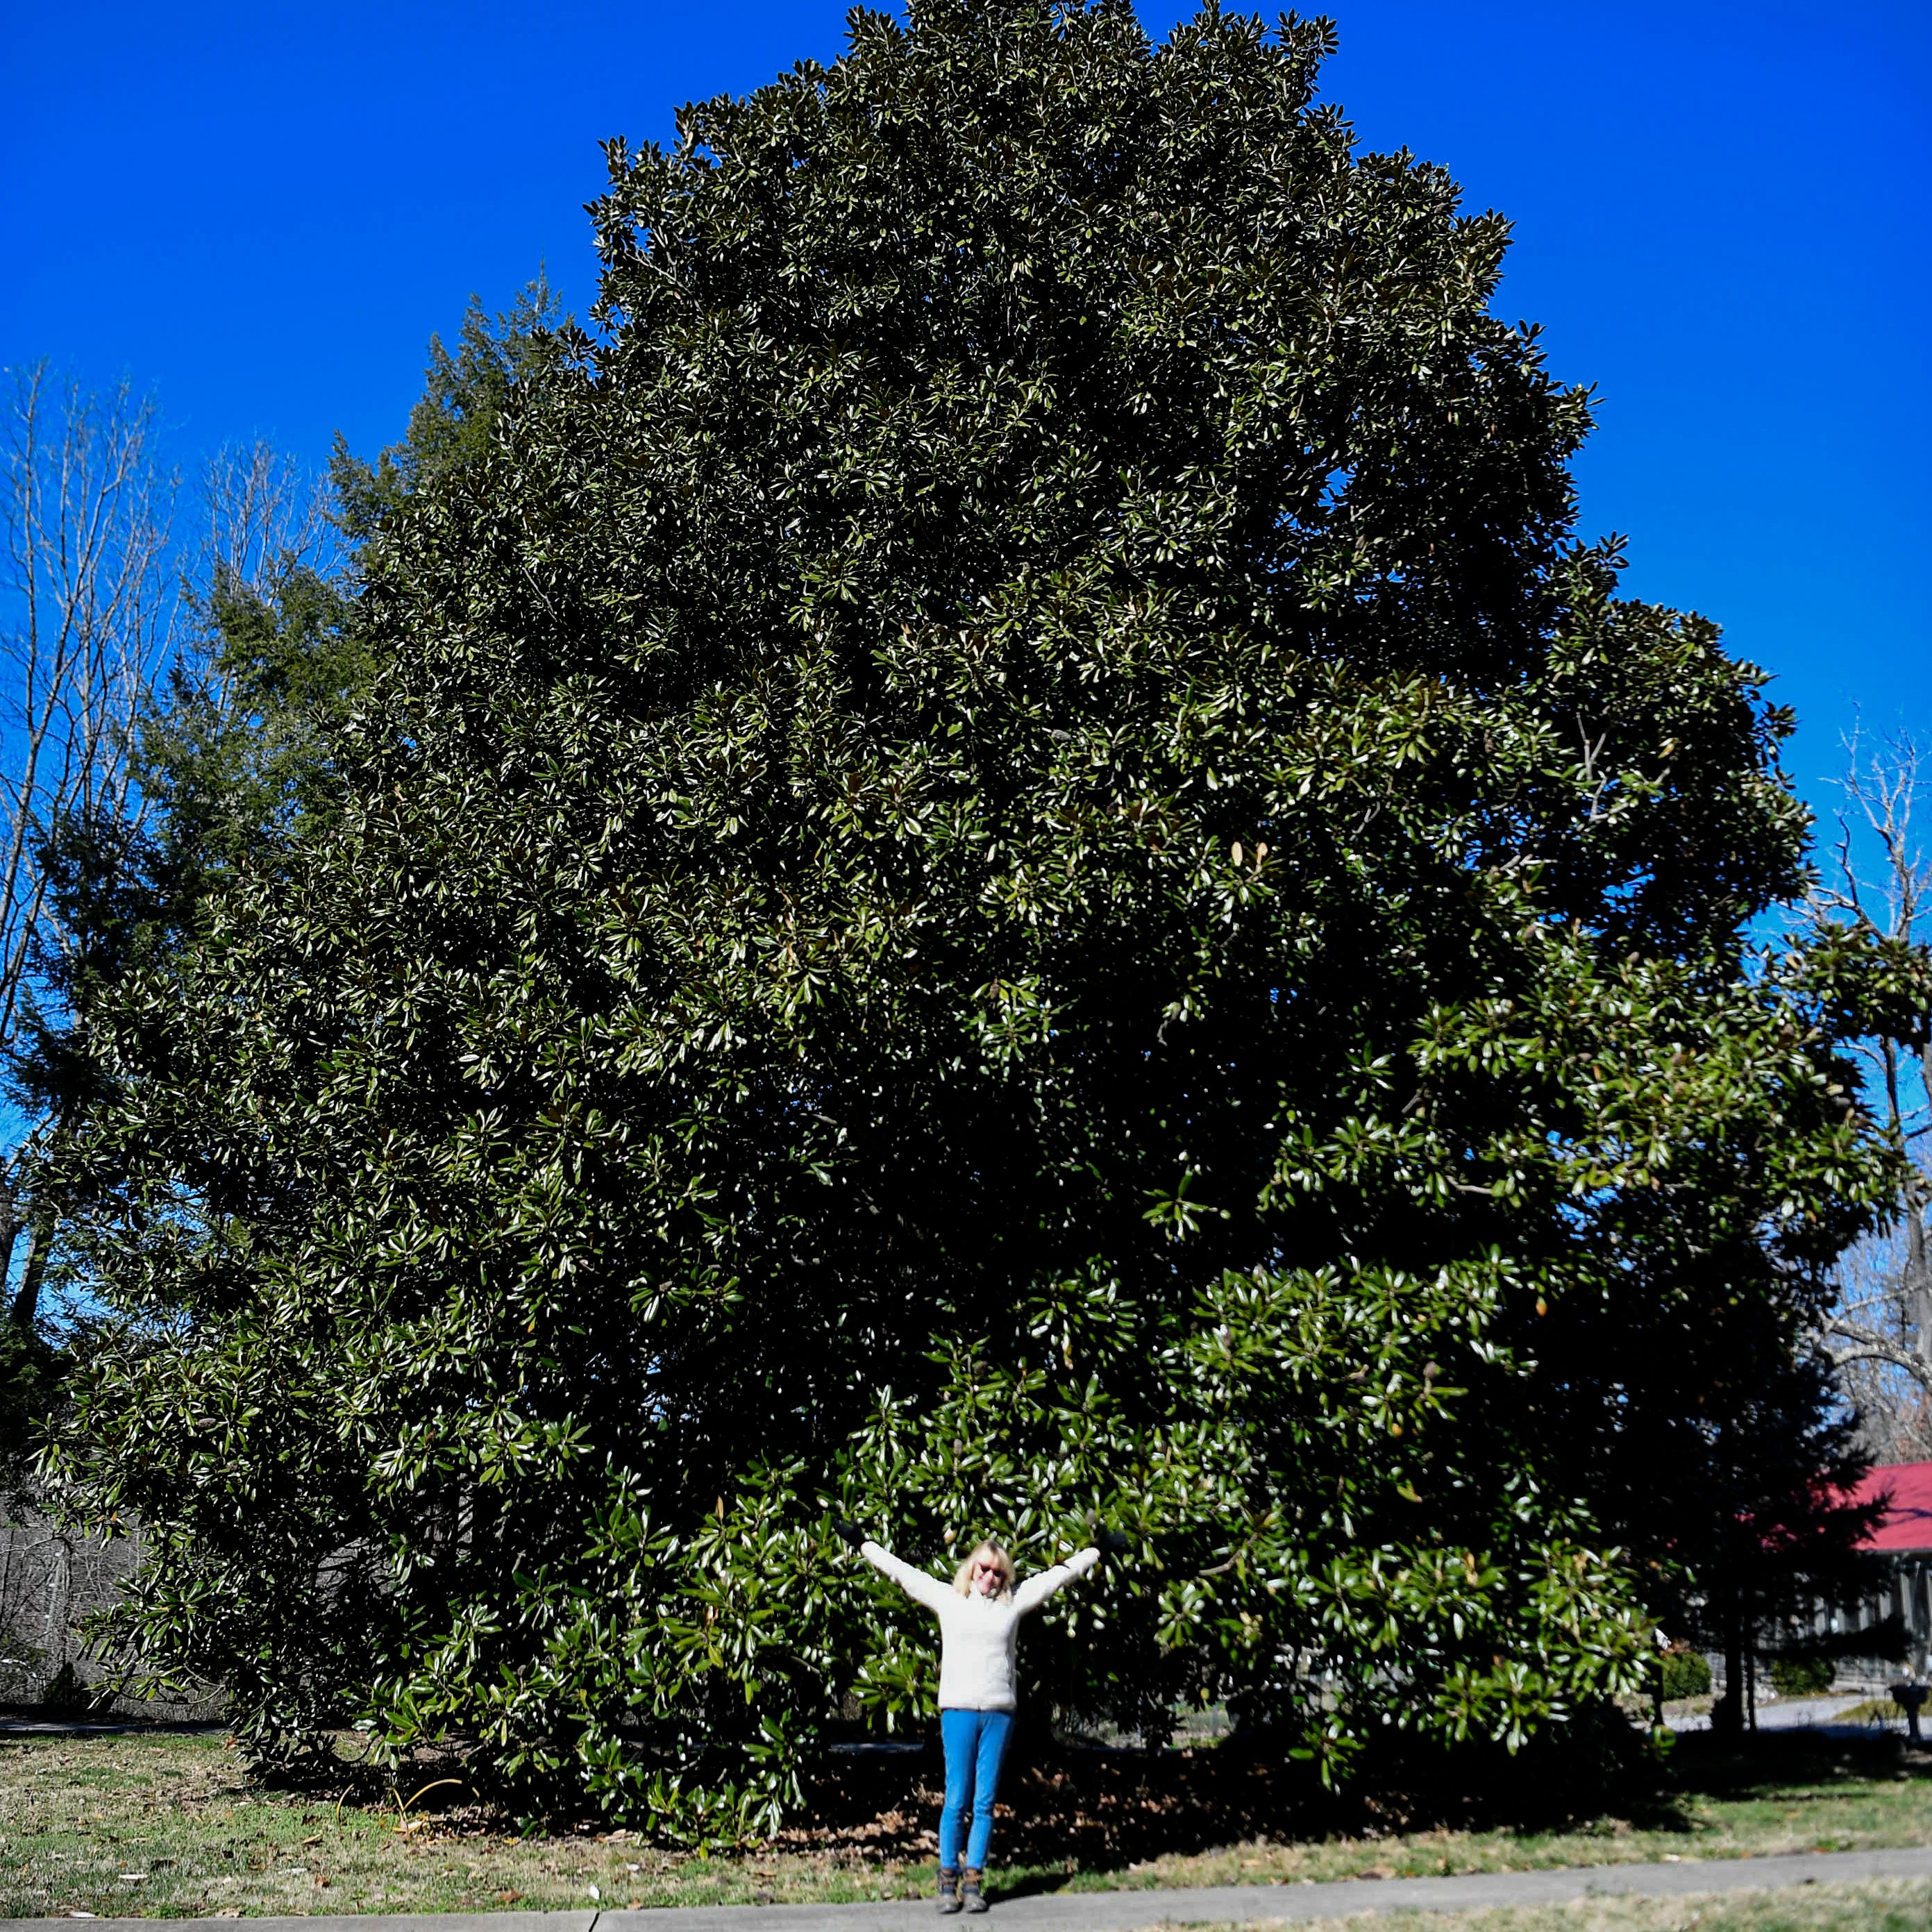 Although surrounded by forests, Asheville's tree population is in rapid decline